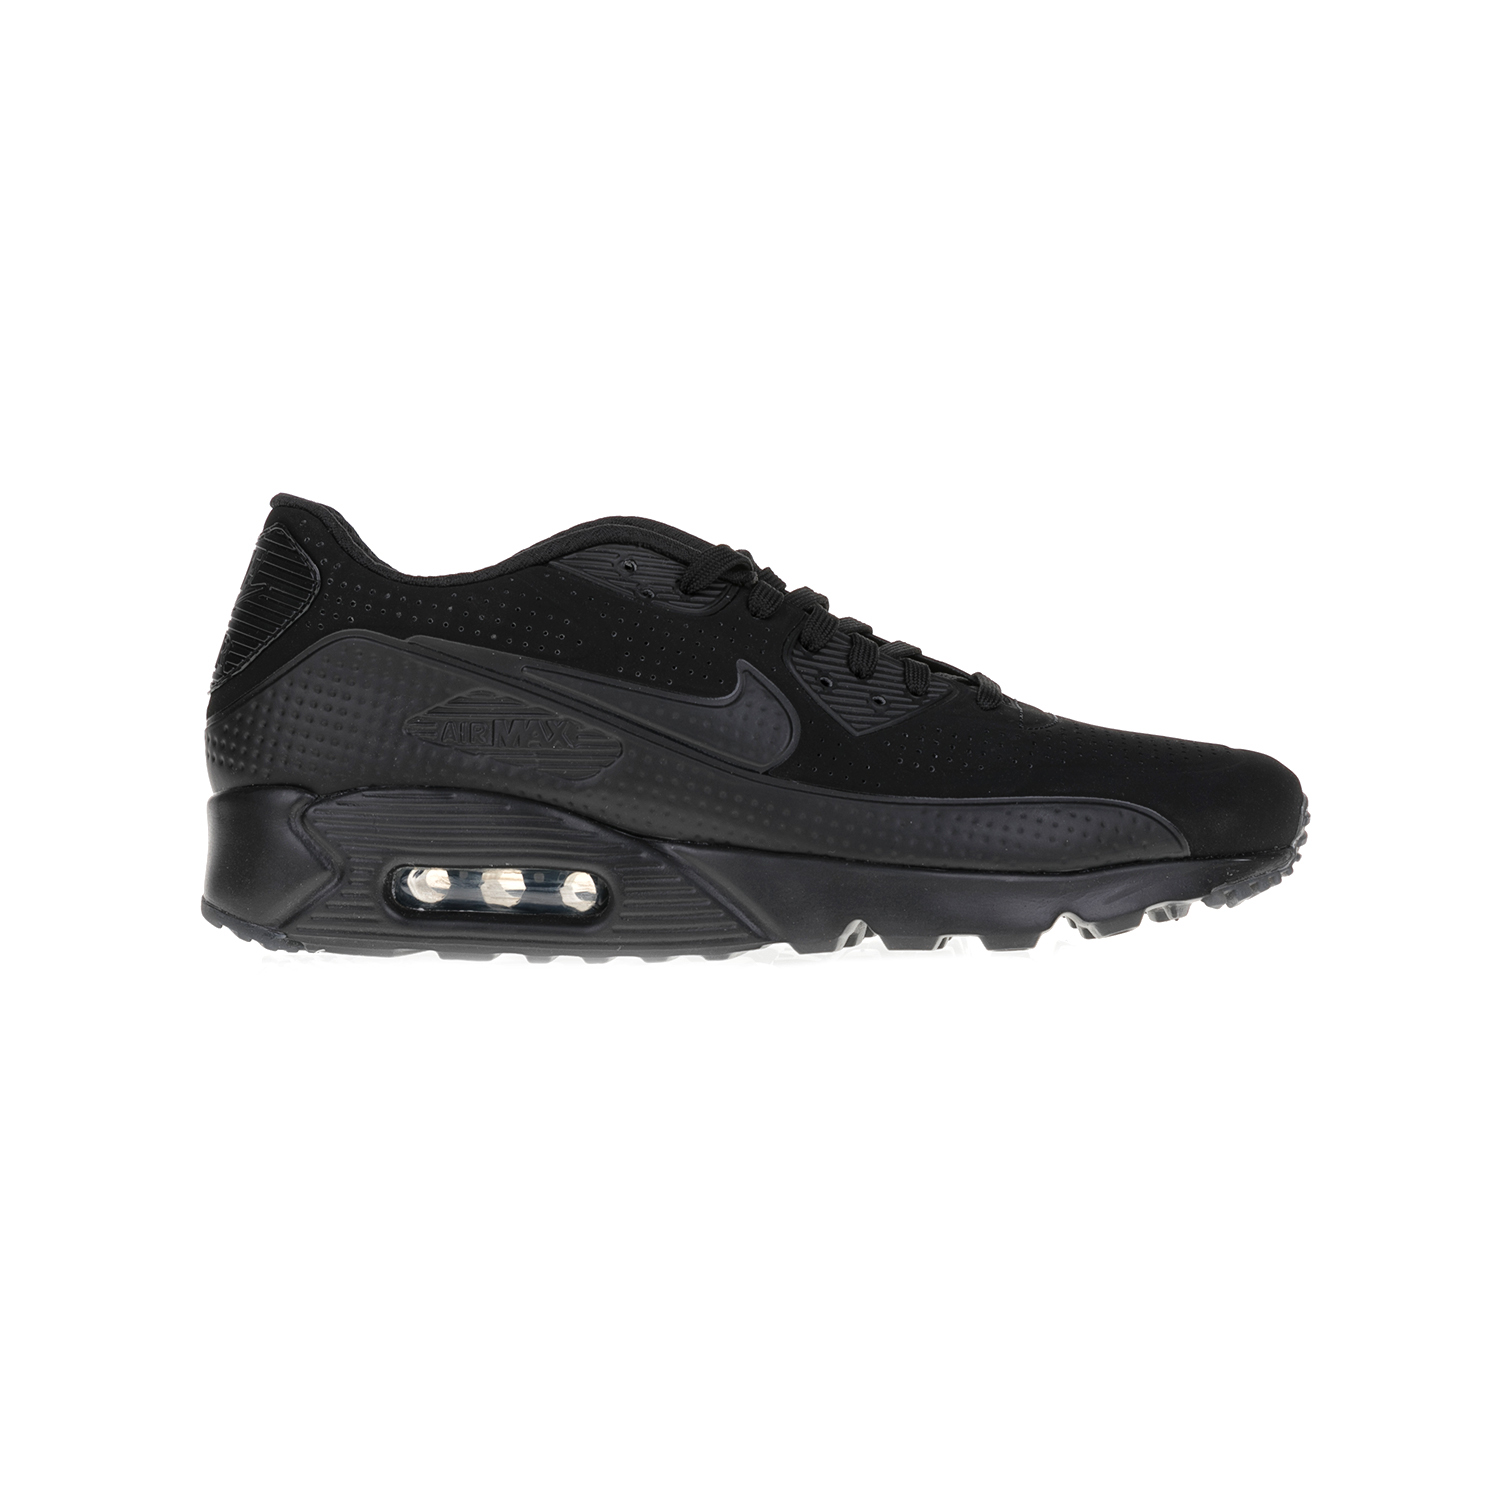 NIKE – Ανδρικά παπούτσια NIKE AIR MAX 90 ULTRA MOIRE μαύρα